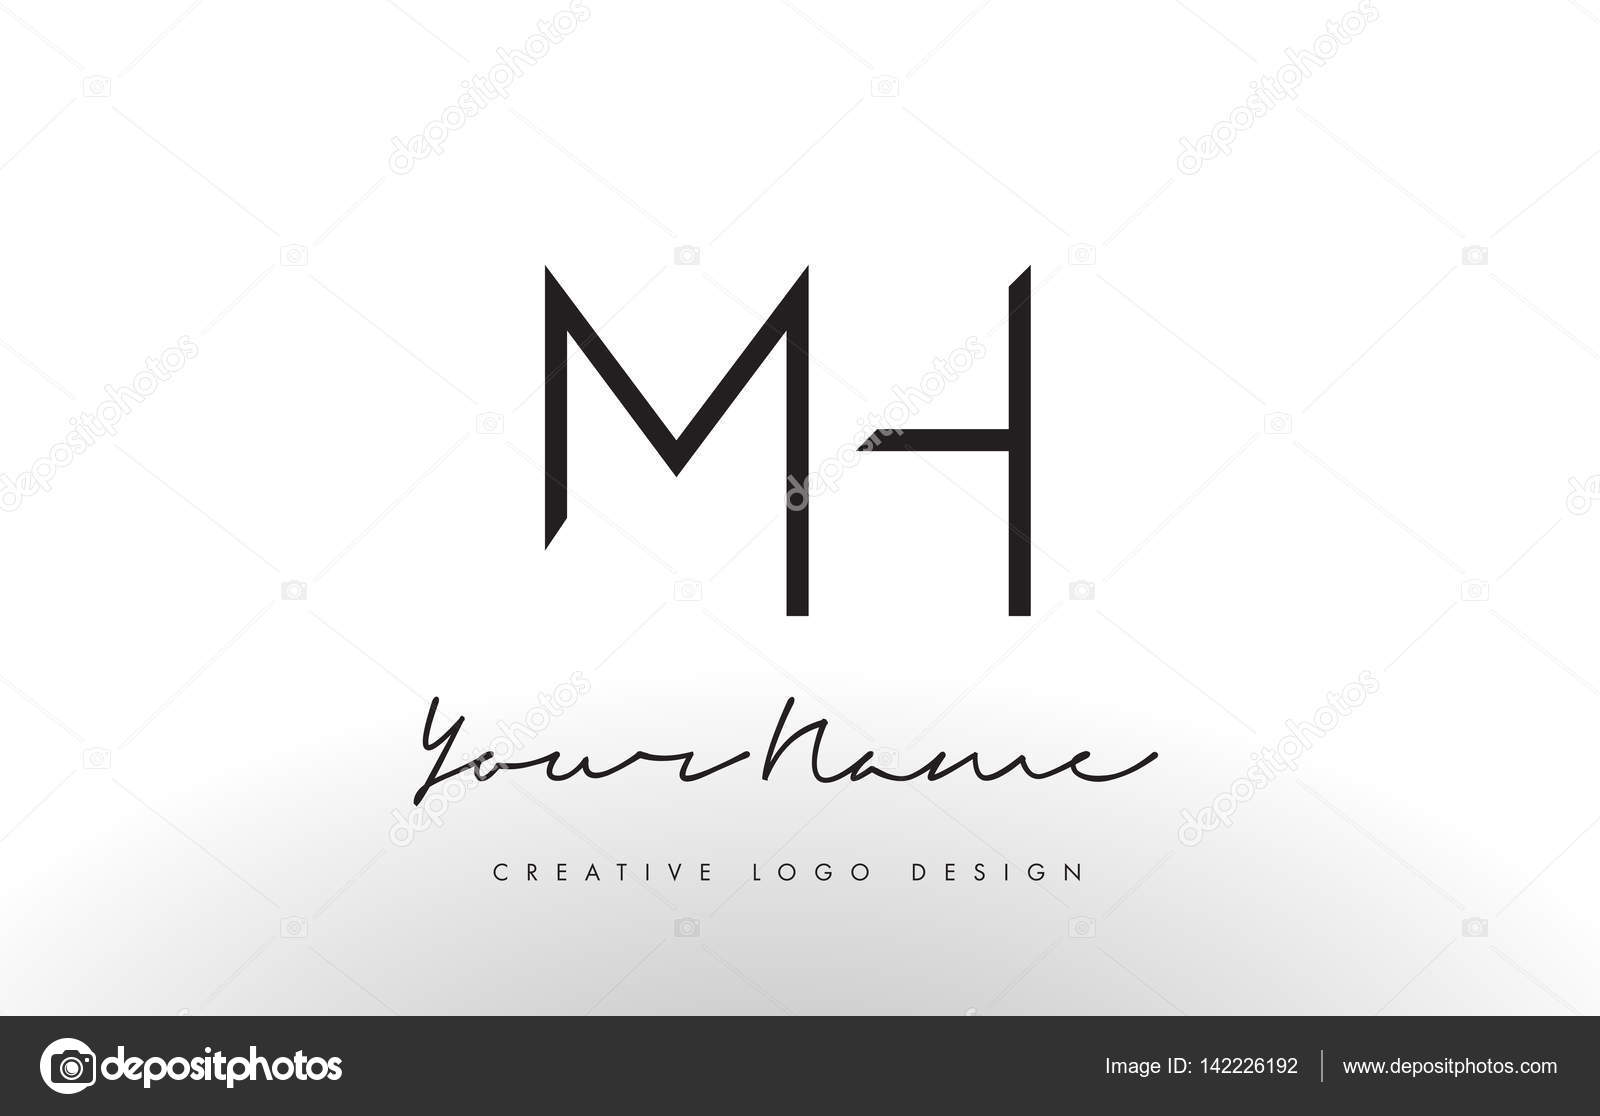 Simple Line Art Designs : Mh letters logo design slim. creative simple black letter concept